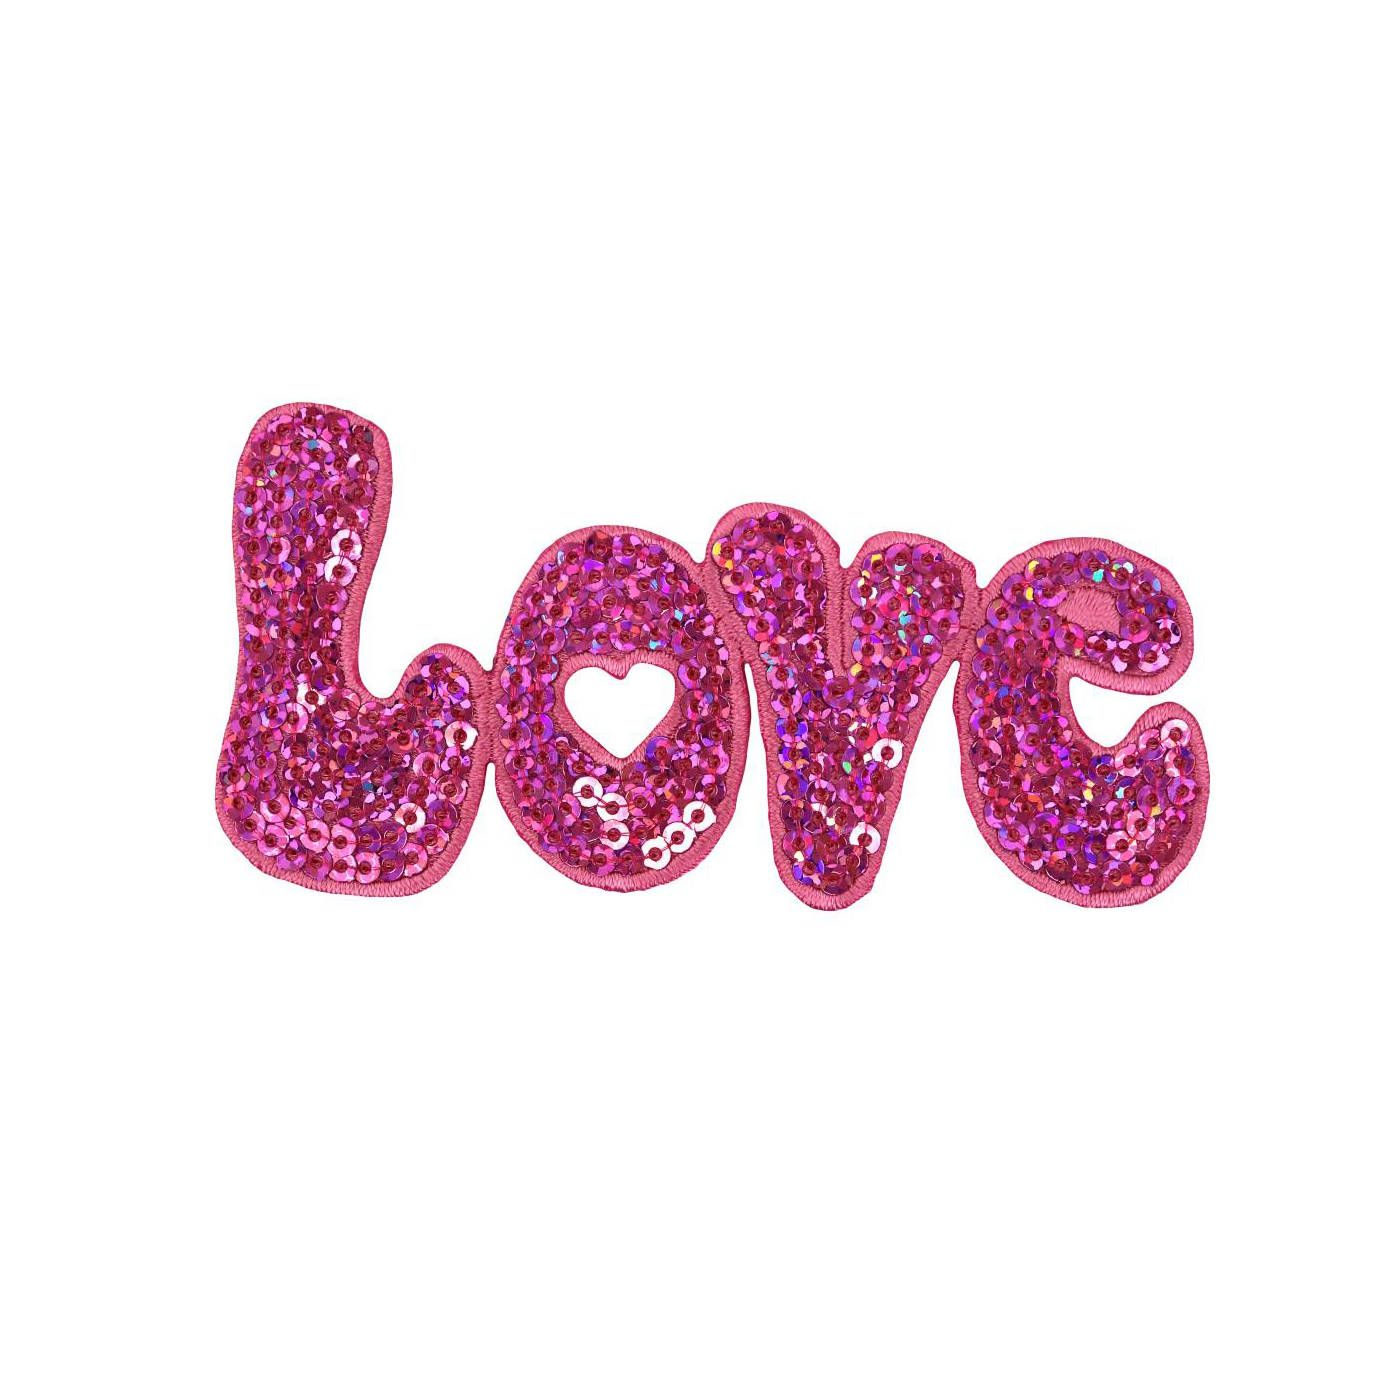 587a55e149eda Love Iron On Patch, Love in Pink Sequins Iron On Applique, Sequin ...